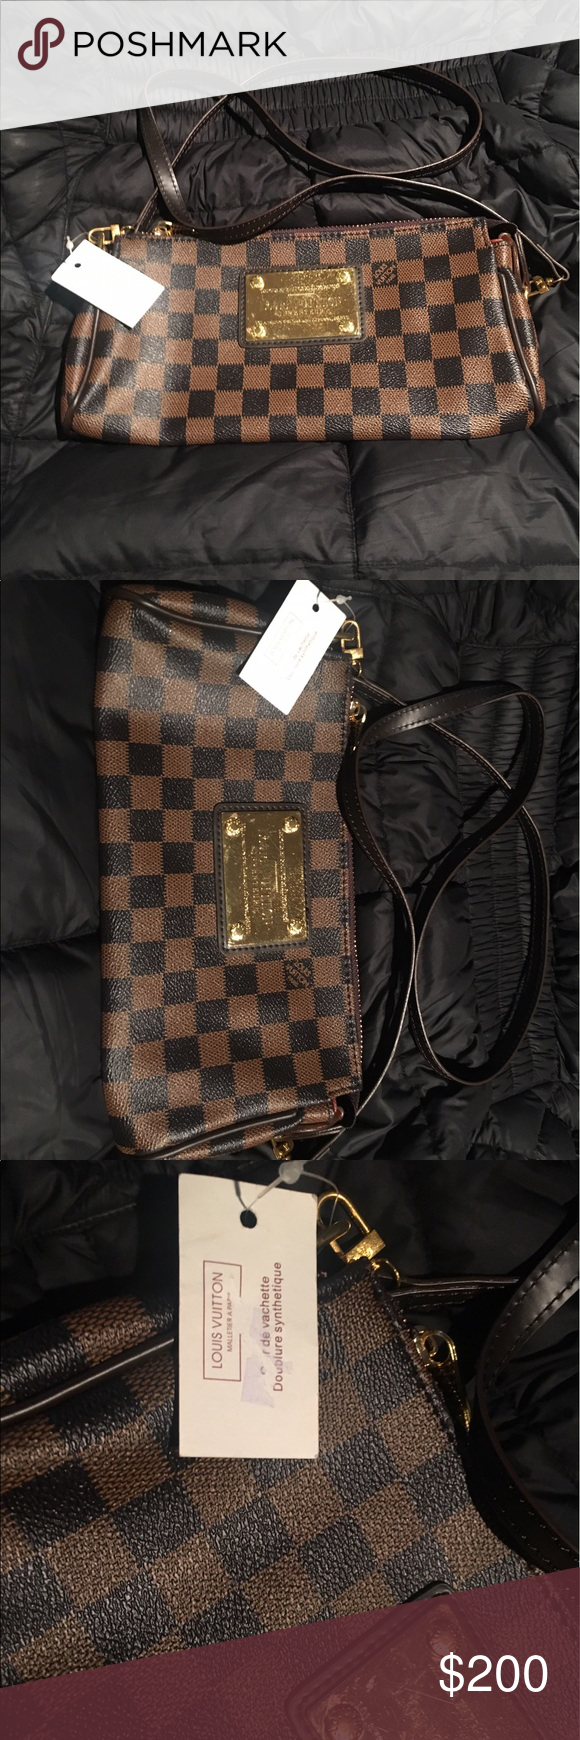 Louis Vuitton cross body bag Cross body Louis Vuitton bag. In great condition with original tag Louis Vuitton Bags Crossbody Bags